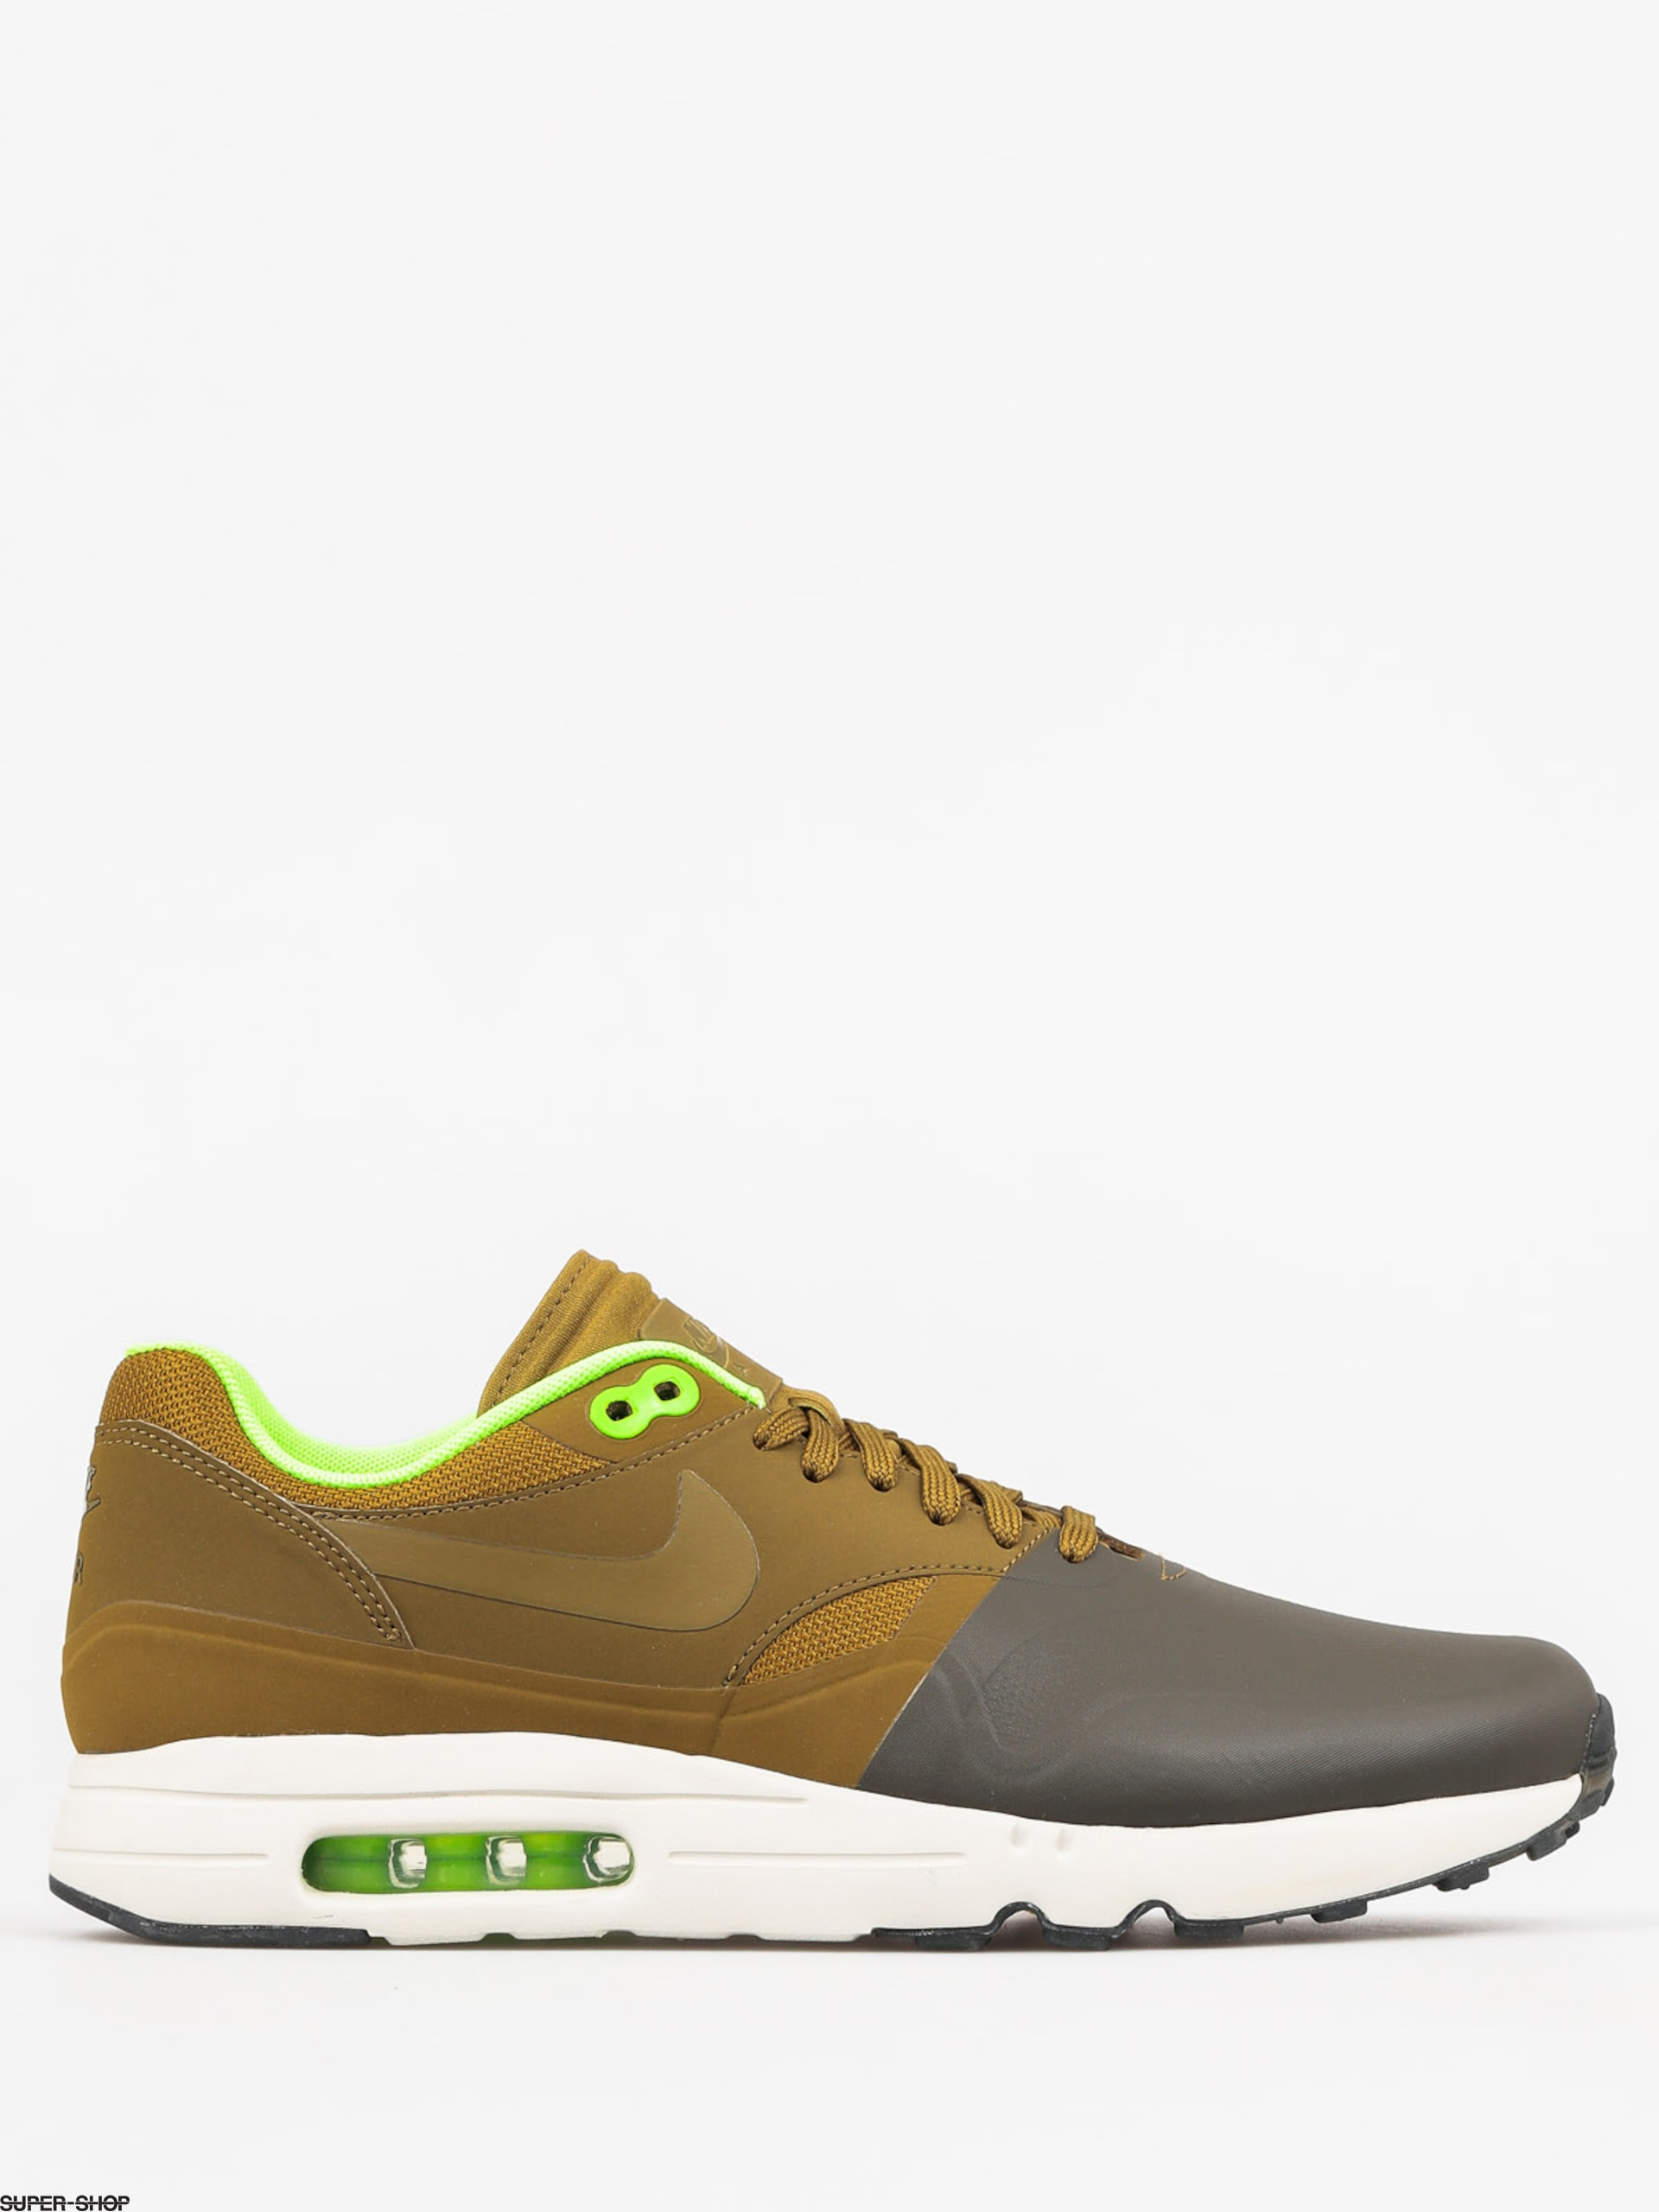 Nike Shoes Air Max 1 (Ultra 2.0 Se cargo khaki/militia green)